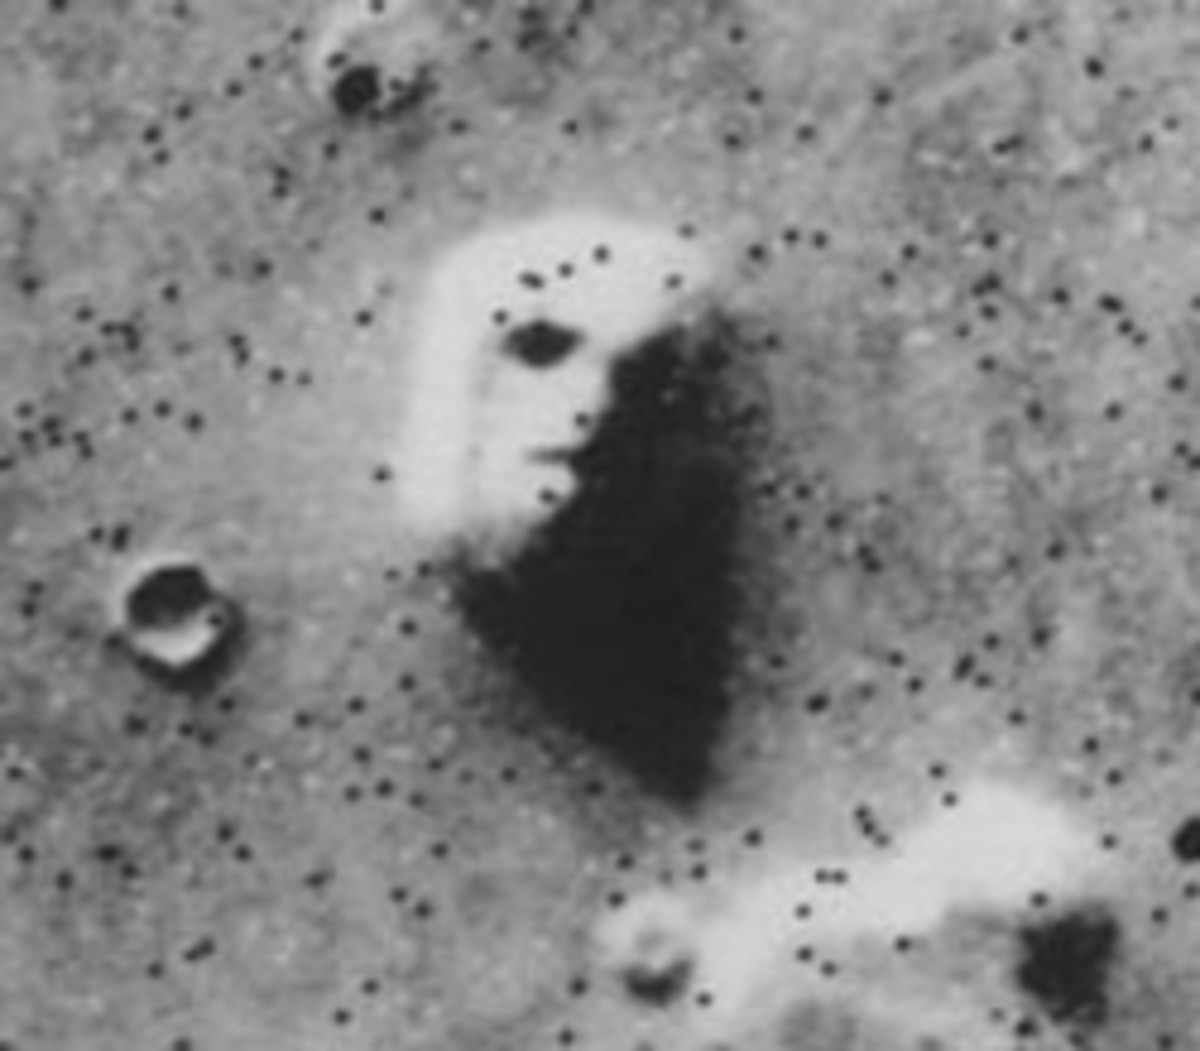 The famous Face On Mars promoted by Richard Hoagland but ridiculed by NASA.